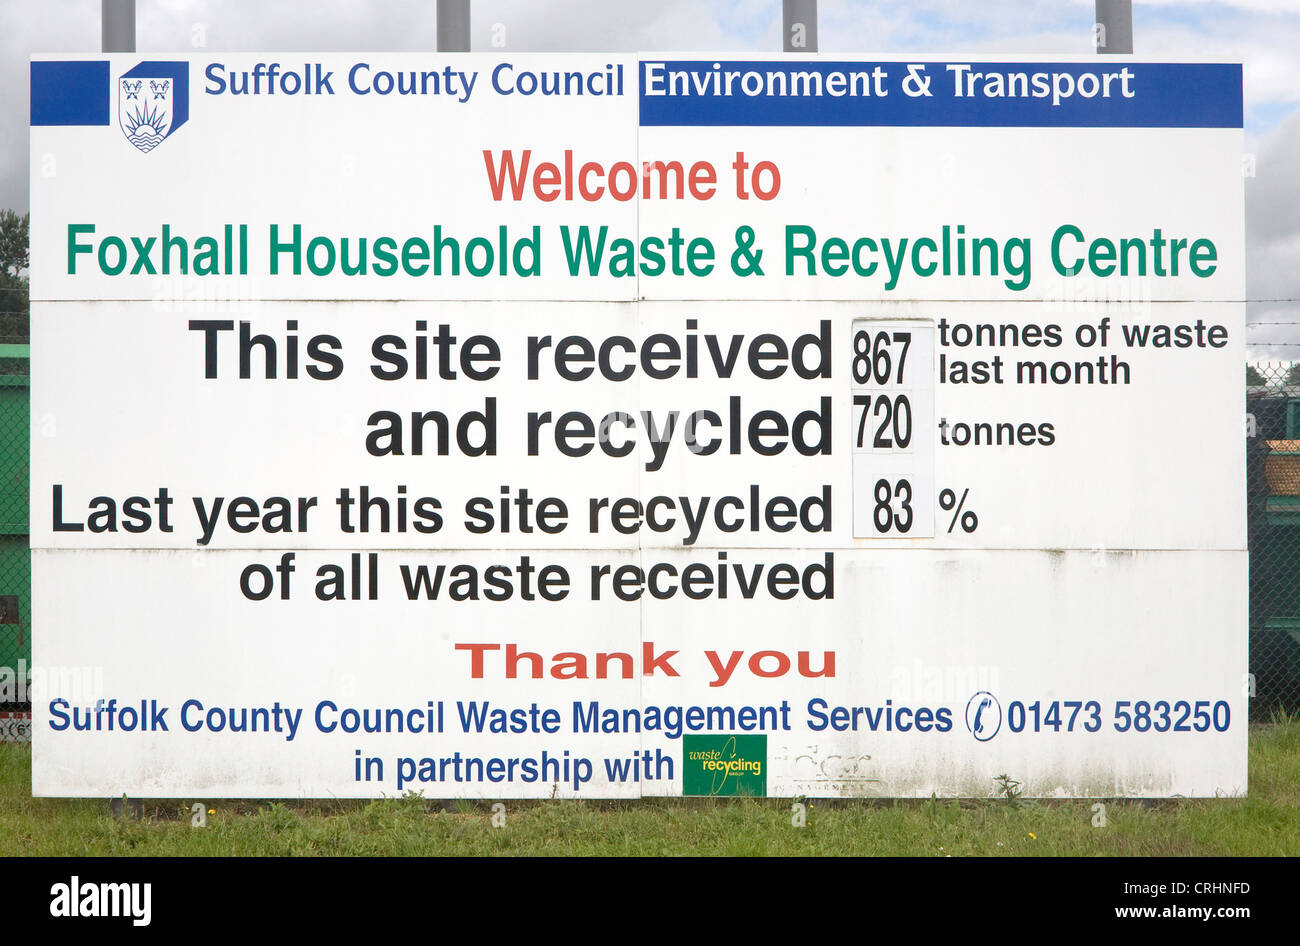 information notice Foxhall household waste recycling centre Suffolk England - Stock Image